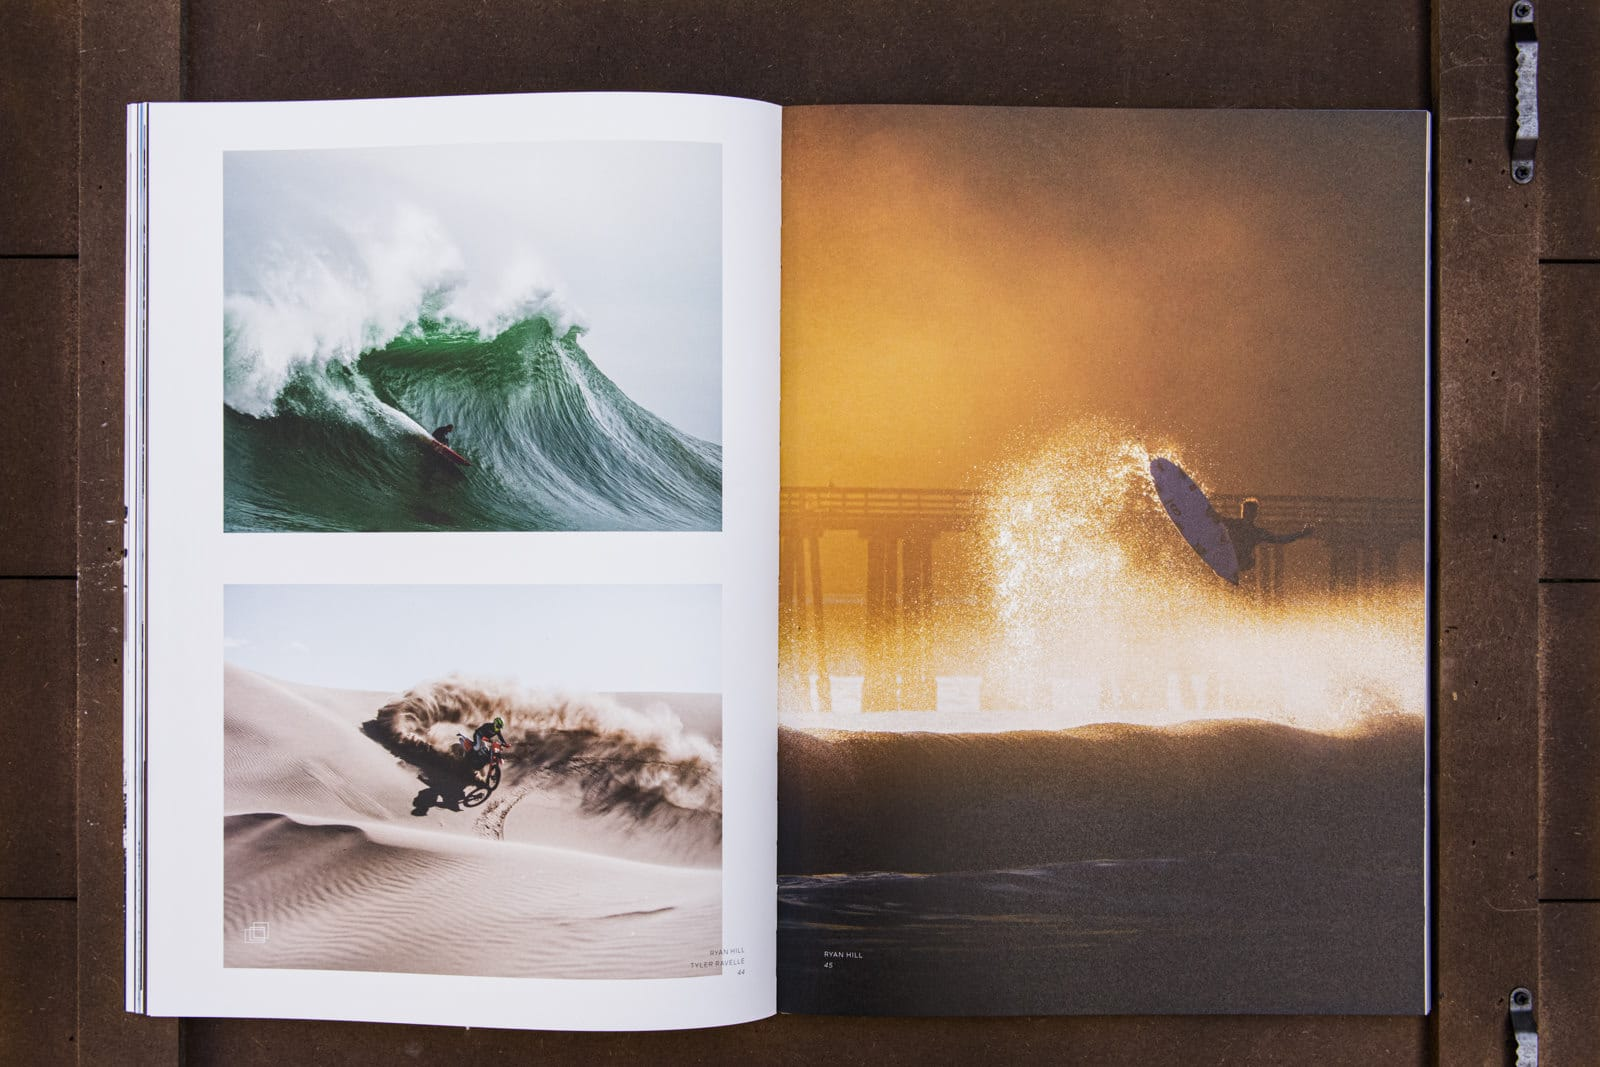 Waves and Woods Surfmagazin Seitenshooting auf Holz